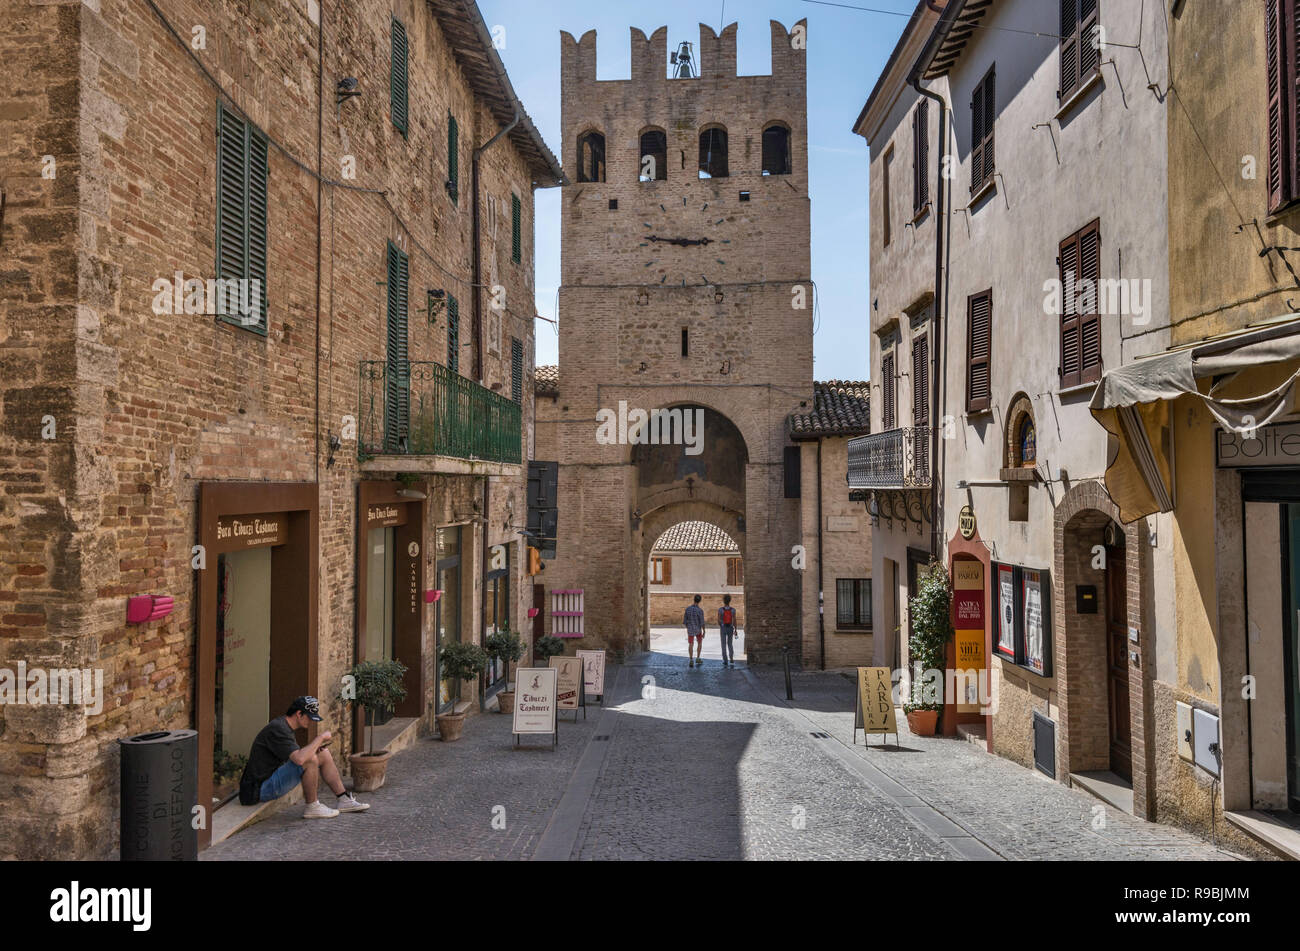 Porta Sant Agostino, medieval gate at Corso Goffredo Mameli, street in historic center of Montefalco, Umbria, Italy - Stock Image